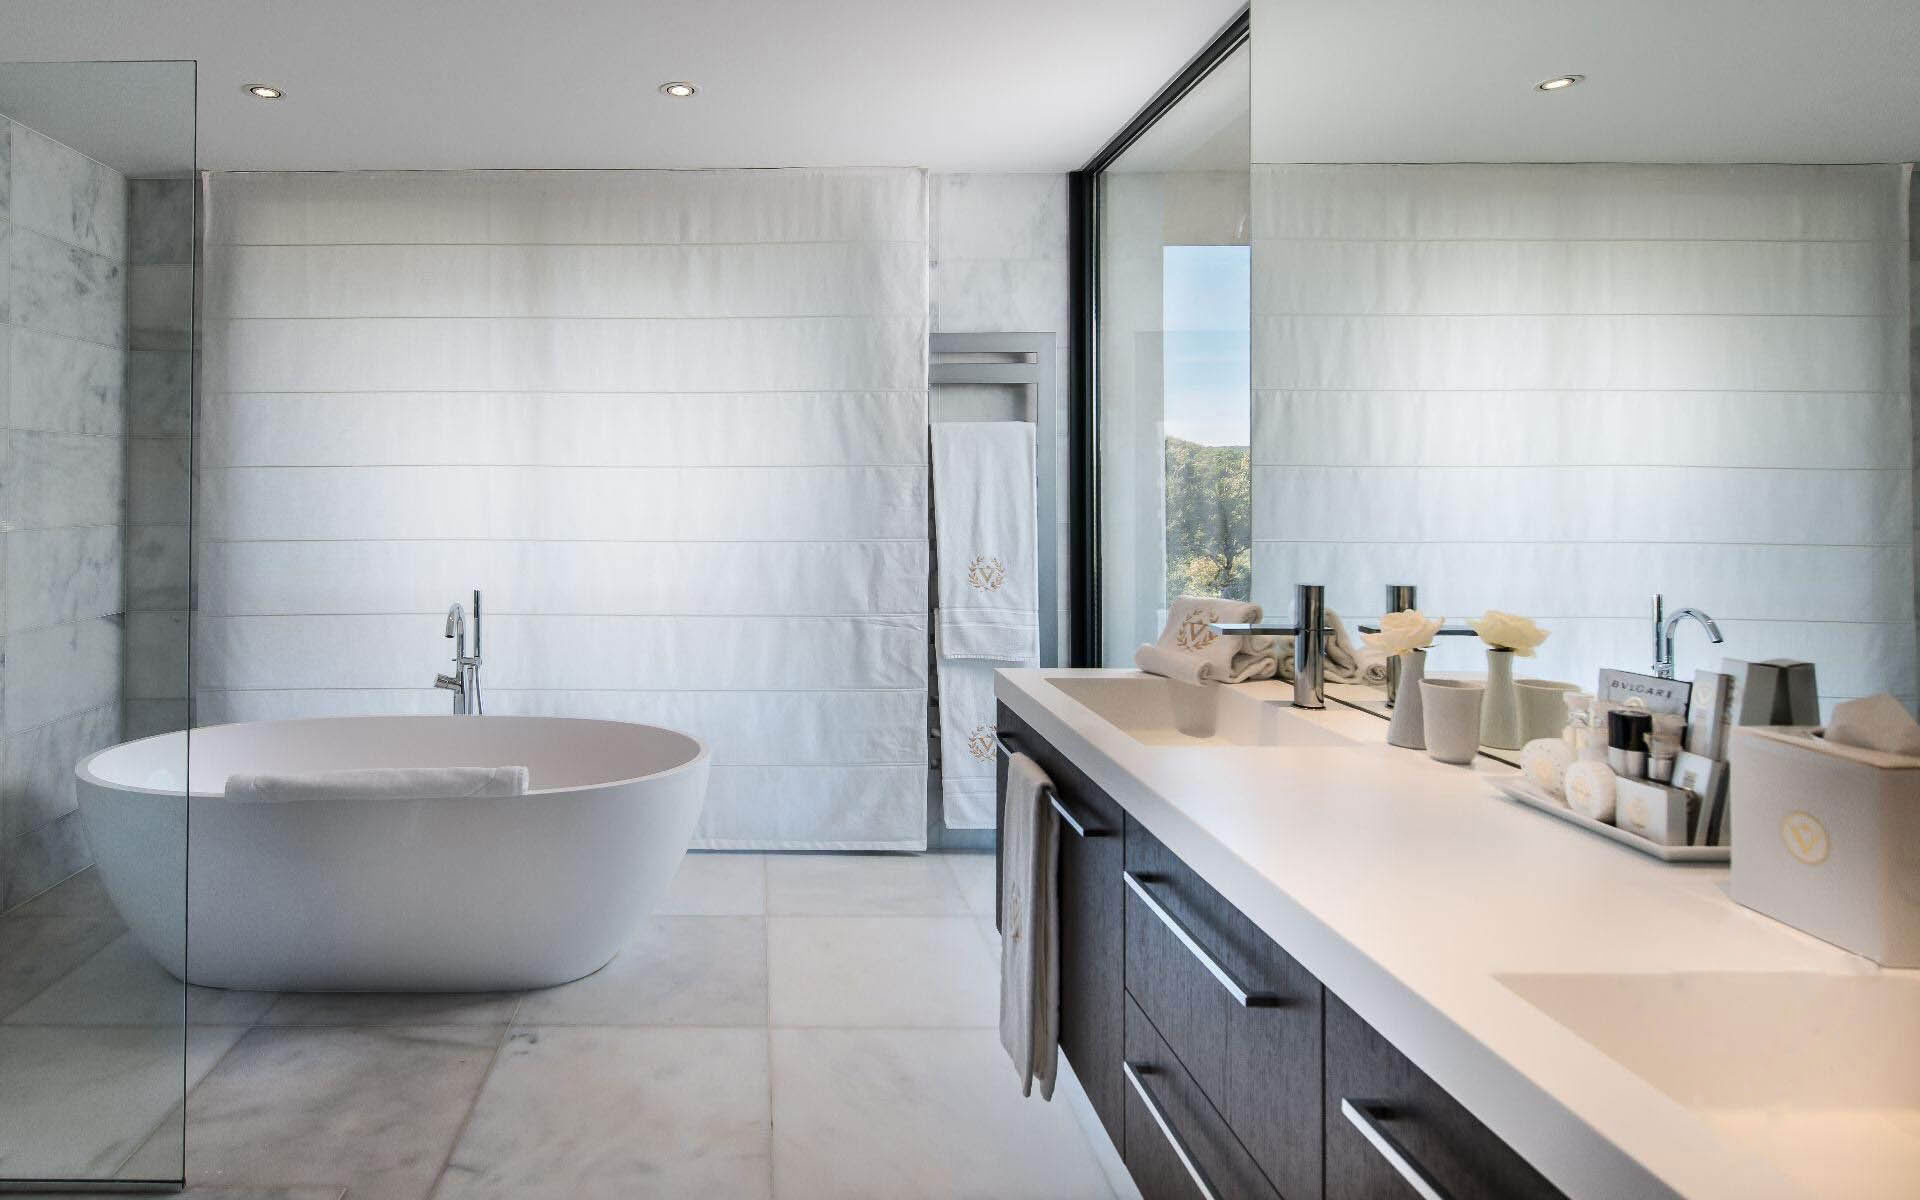 Bath, Sinks, Bathroom, Luxury Holiday Villa in Saint-Tropez, France